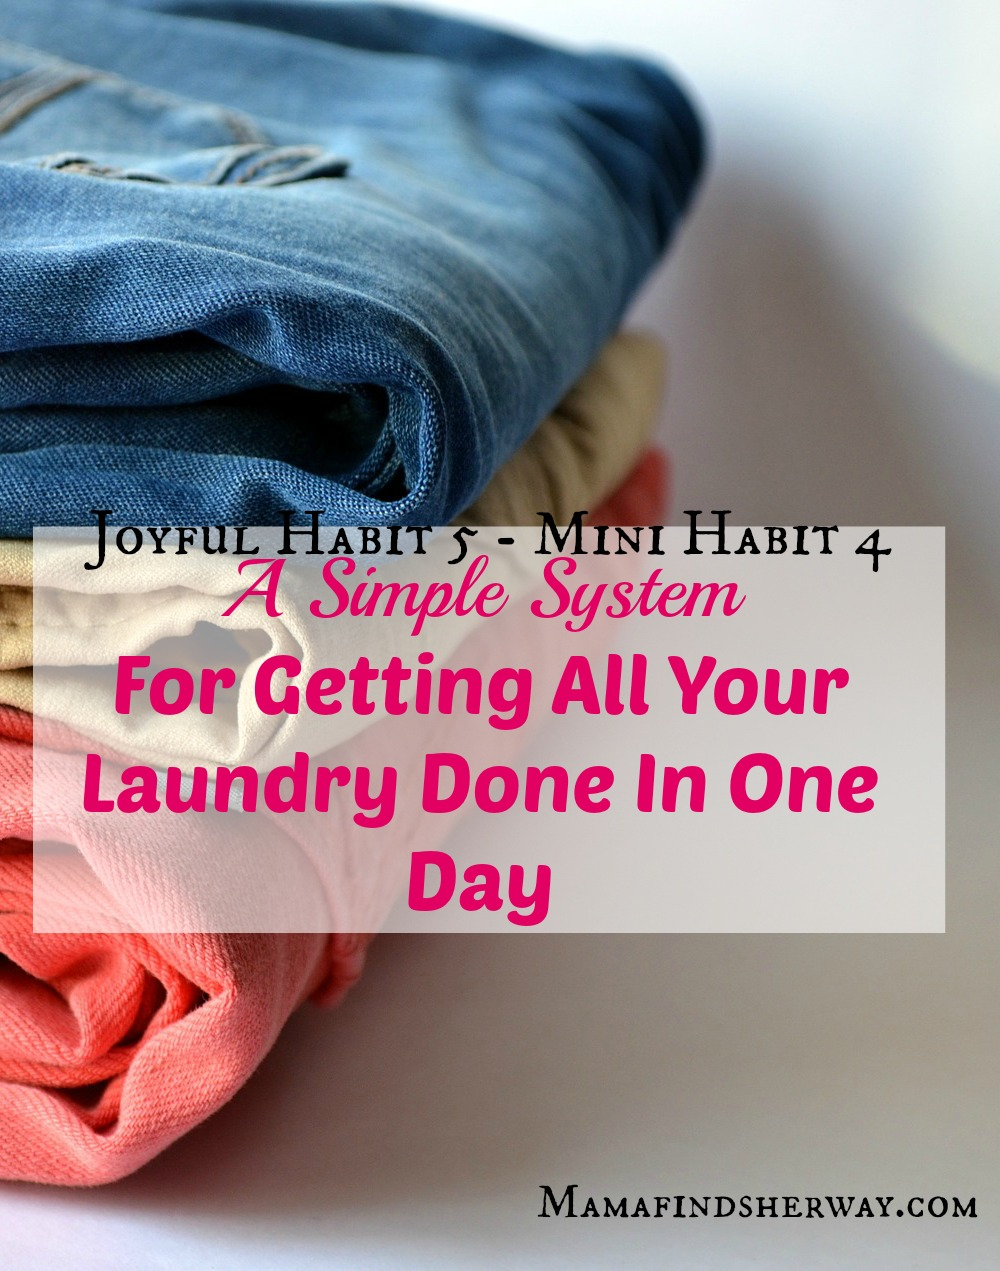 A Simple System For Getting All Your Laundry Done In One Day